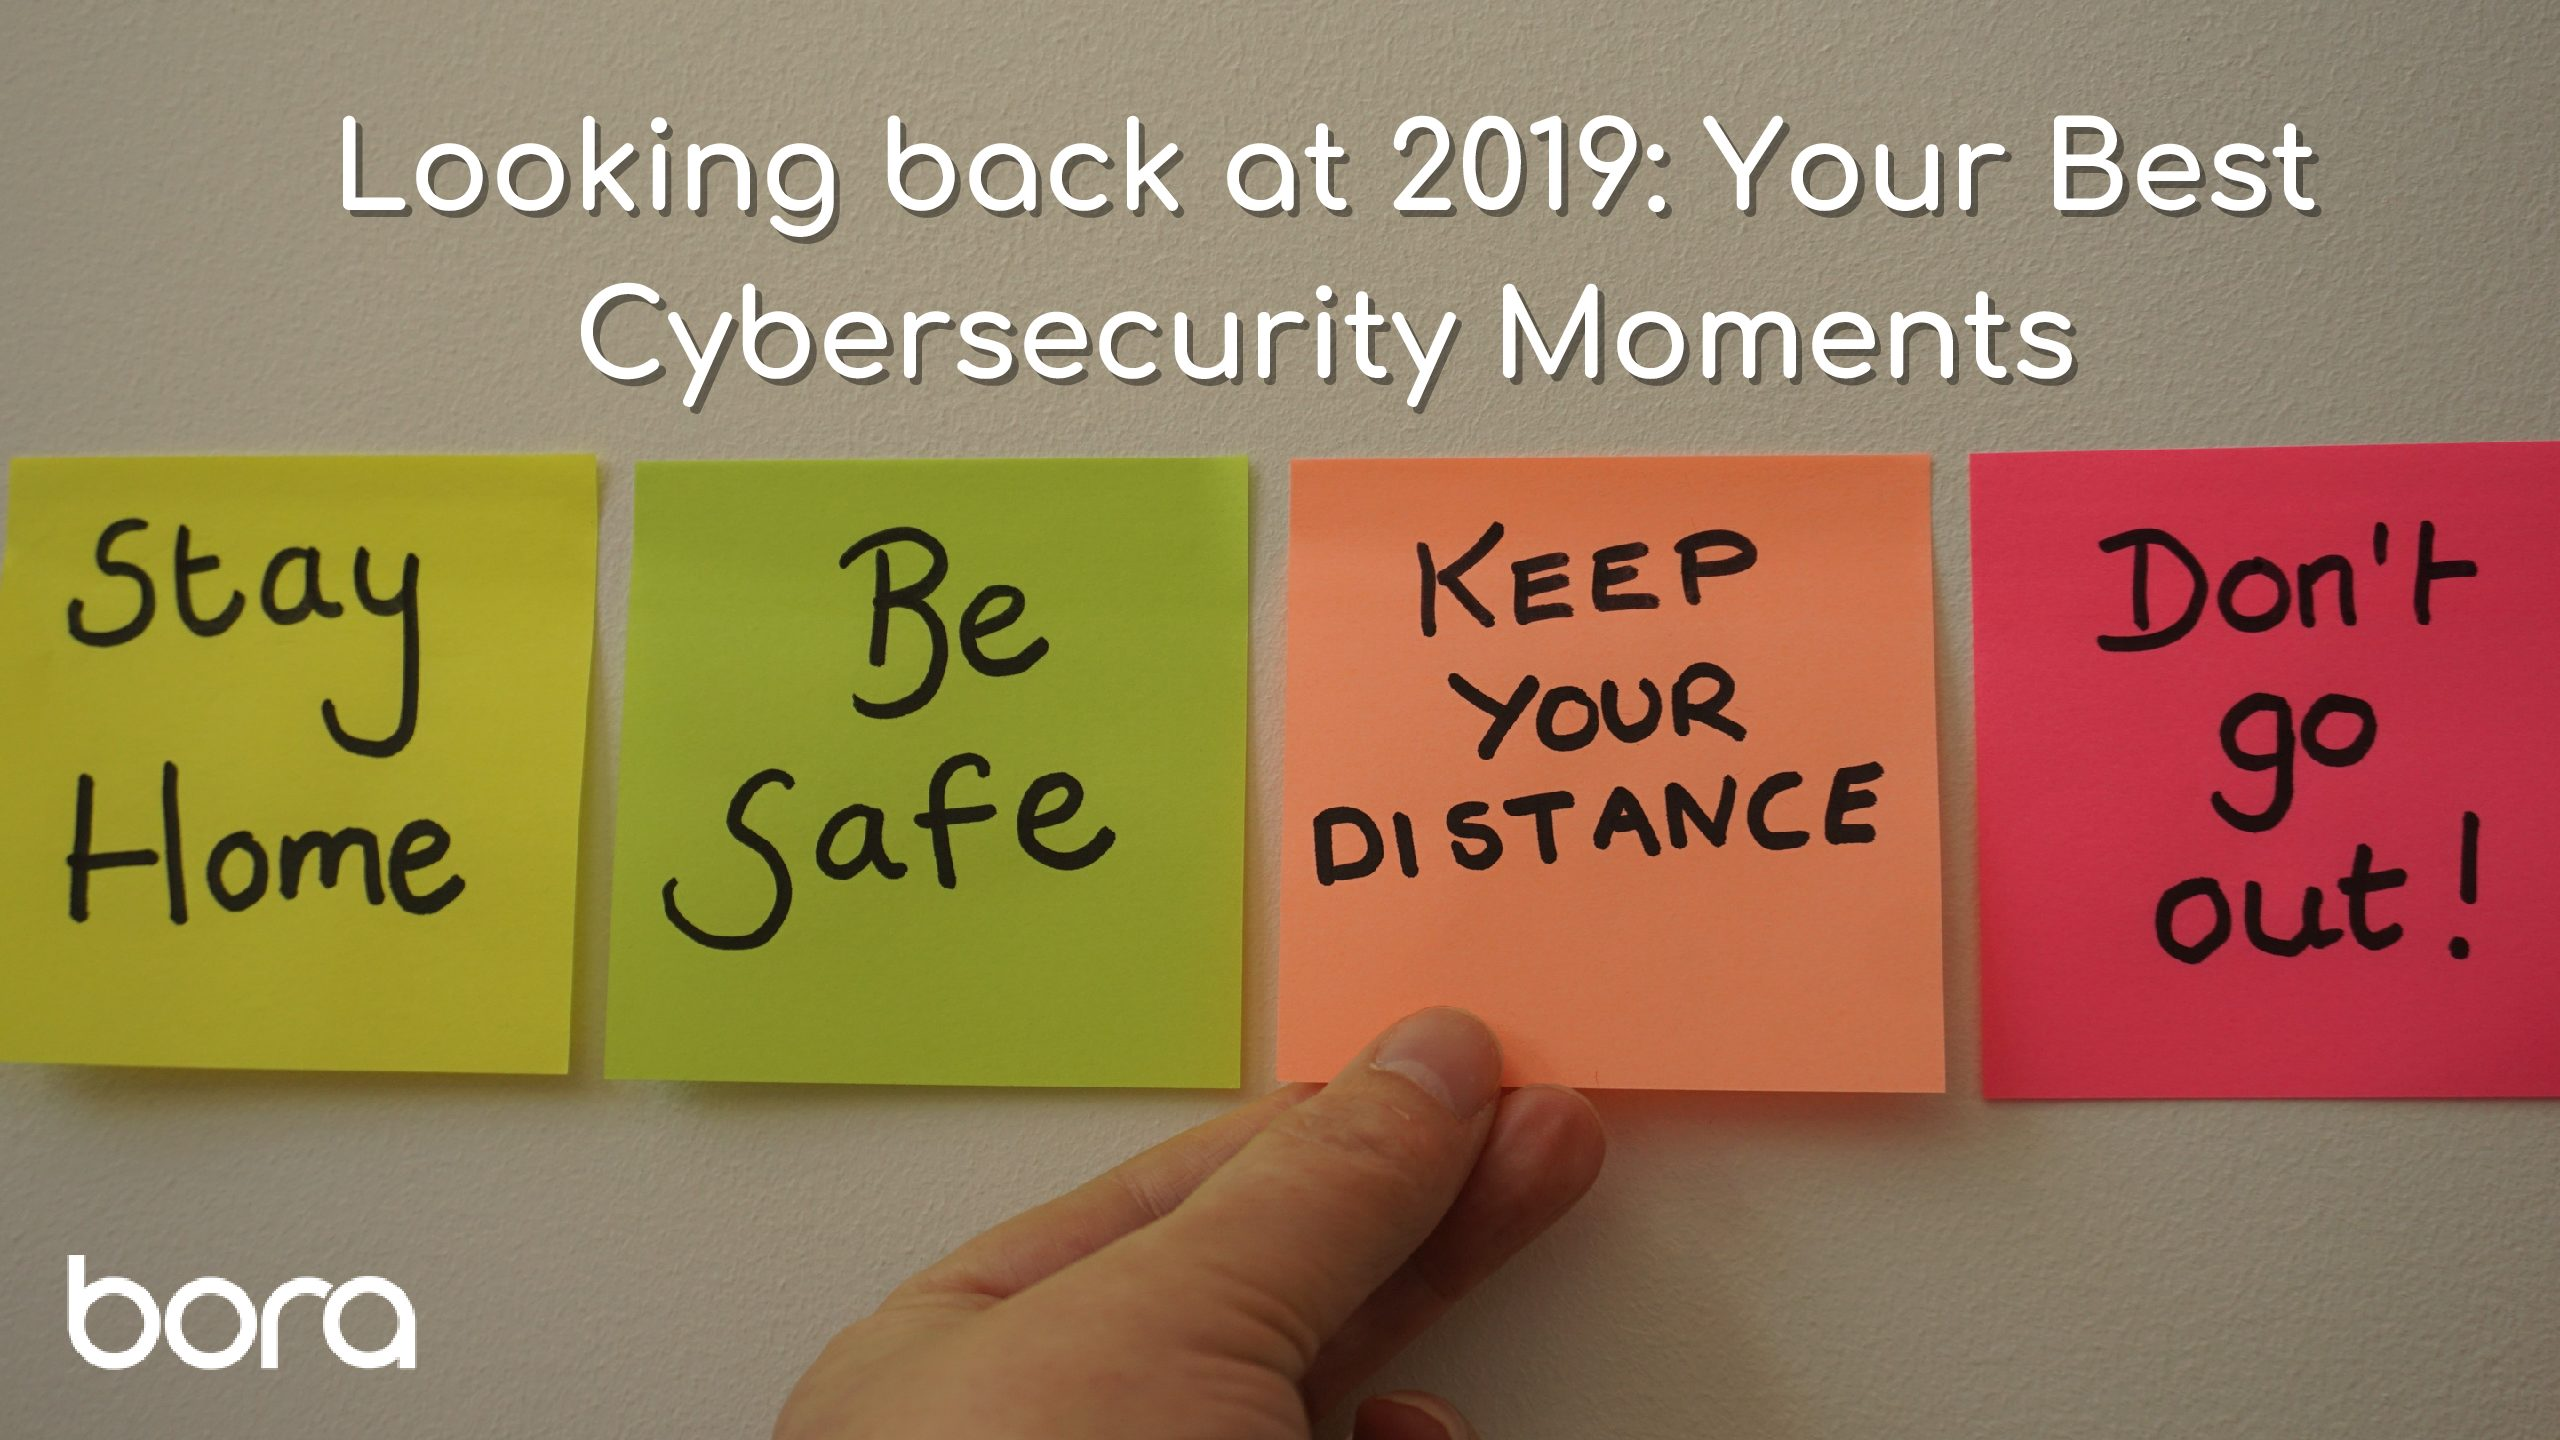 Looking back at 2019: Your Best Cybersecurity Moments